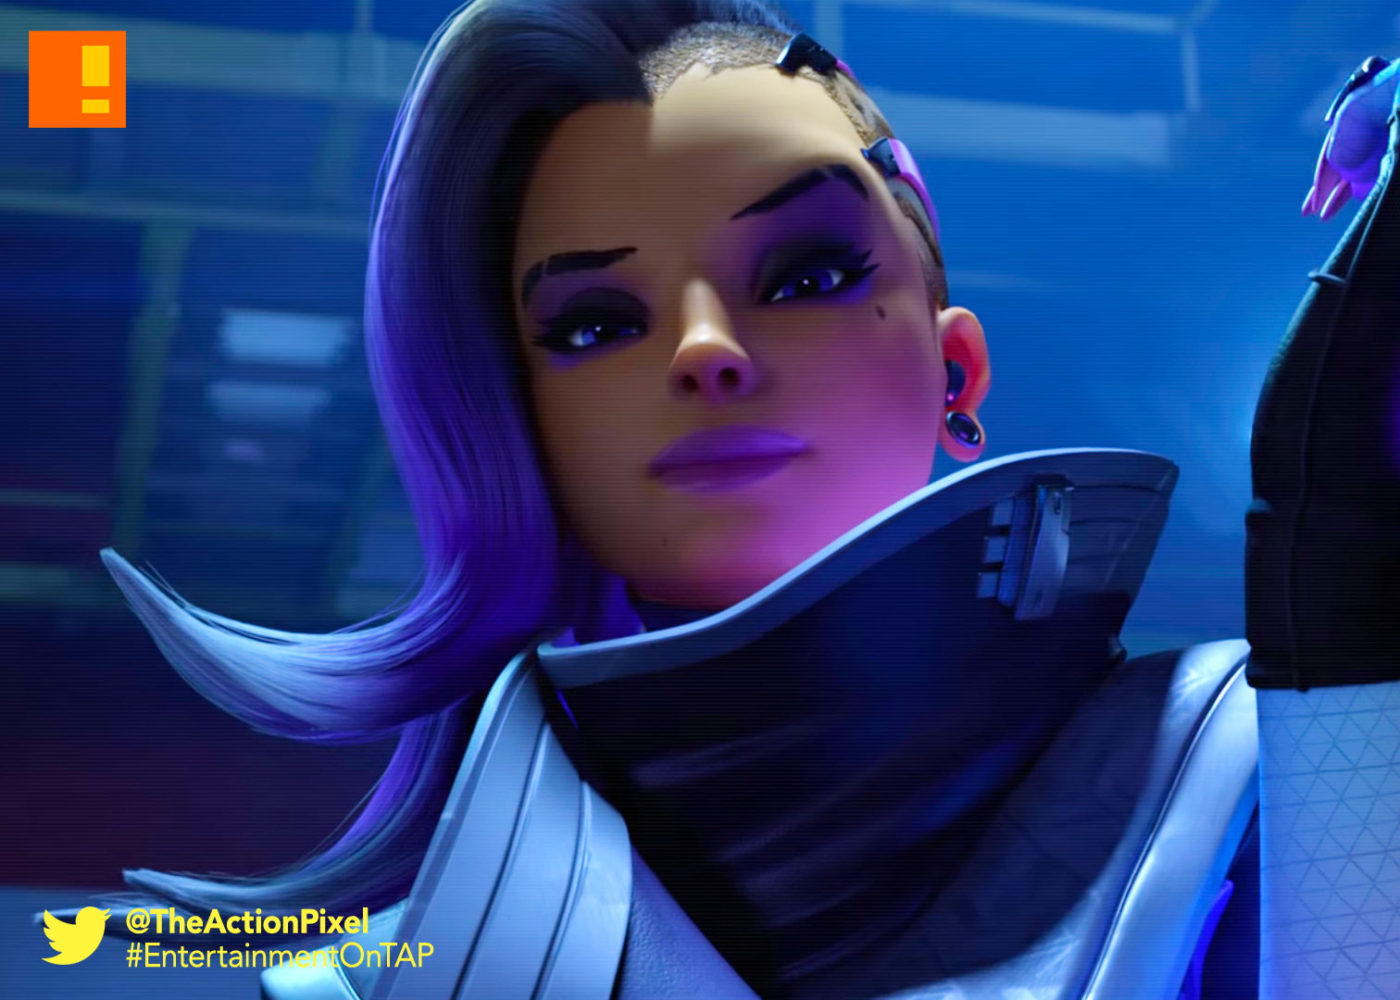 sombra, overwatch, the action pixel, infiltration , blizzard entertainment, blizzard,